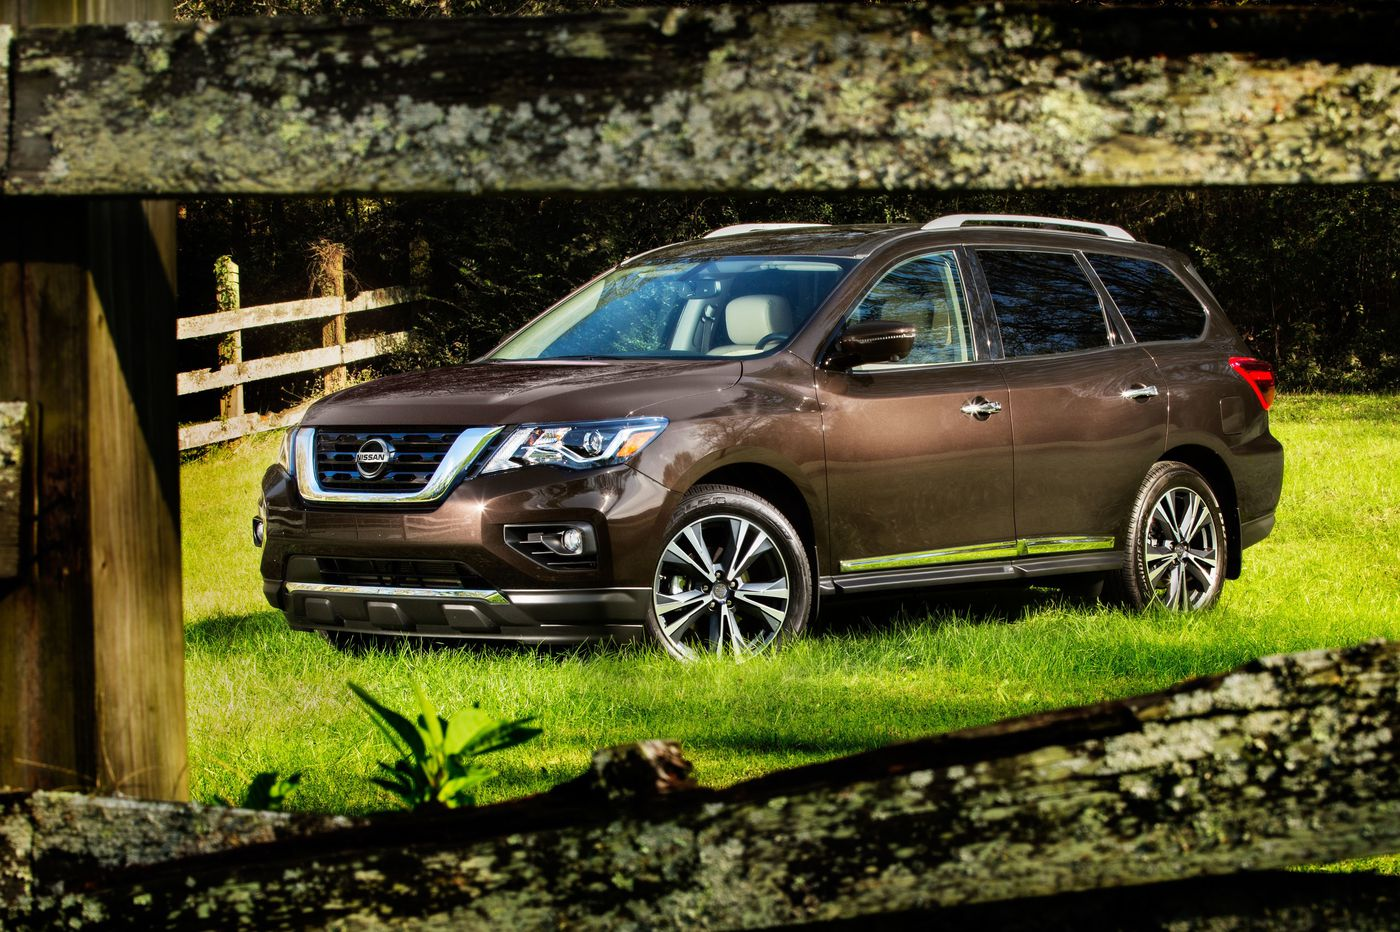 Nissan Pathfinder remains a solid value, but that's about it